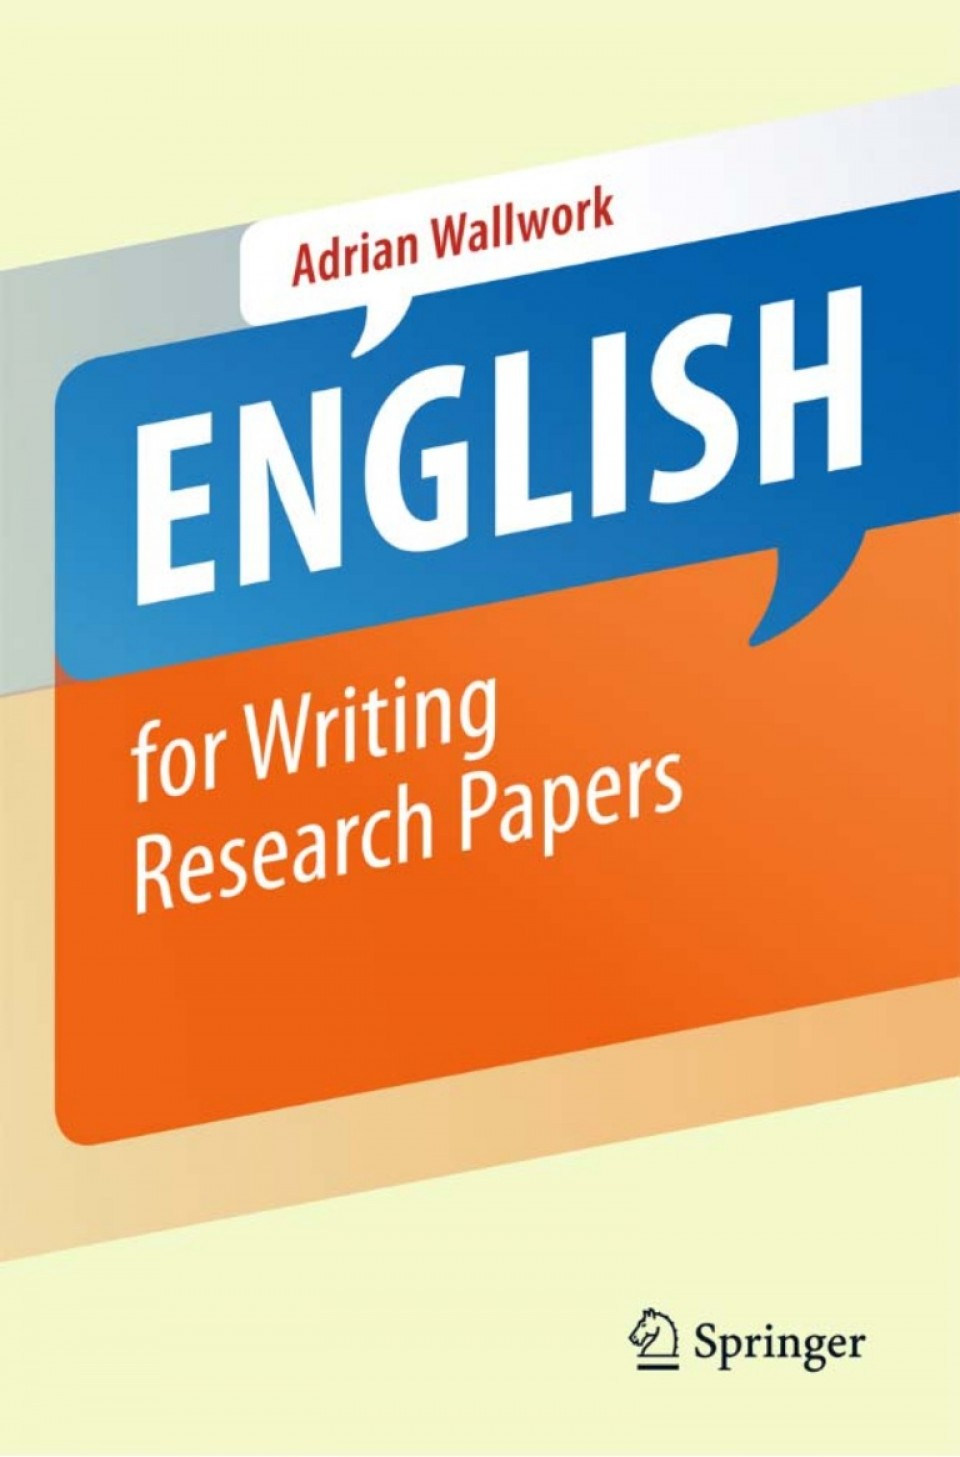 019 Englishforwritingresearchpapers Conversion Gate01 Thumbnail Writing Research Striking Paper Papers Lester A Outline Middle School Across The Curriculum 960